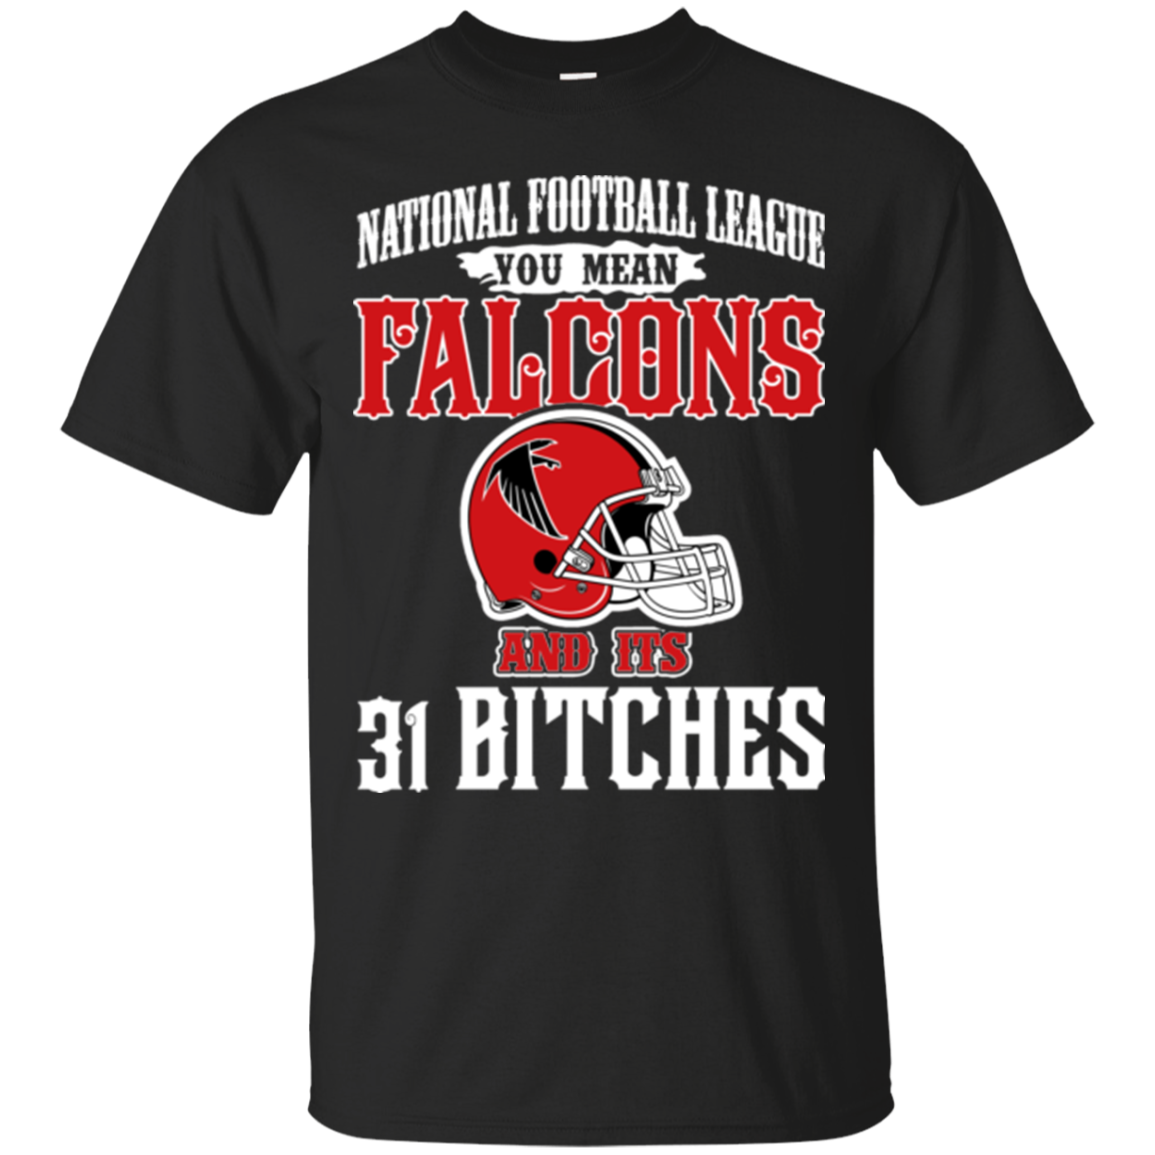 Atlanta Falcons Shirts You Mean Coowbuys & Its 31 Bitches